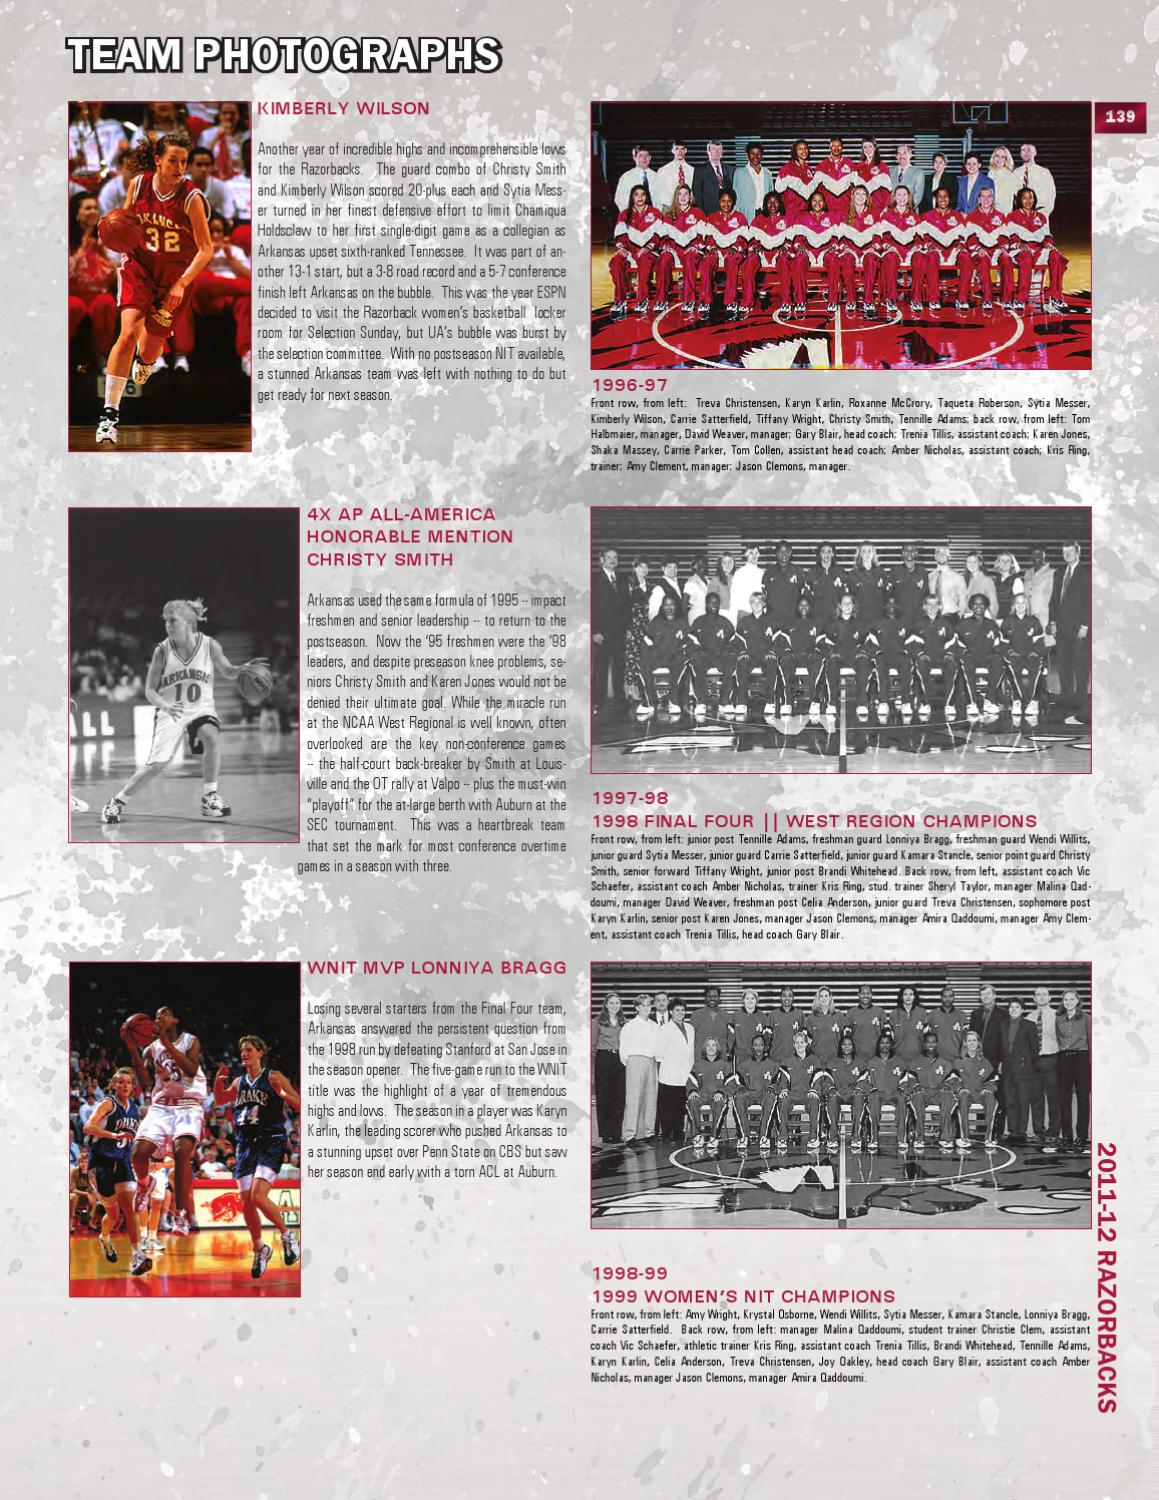 2011-12 Arkansas Women's Basketball Media Guide by